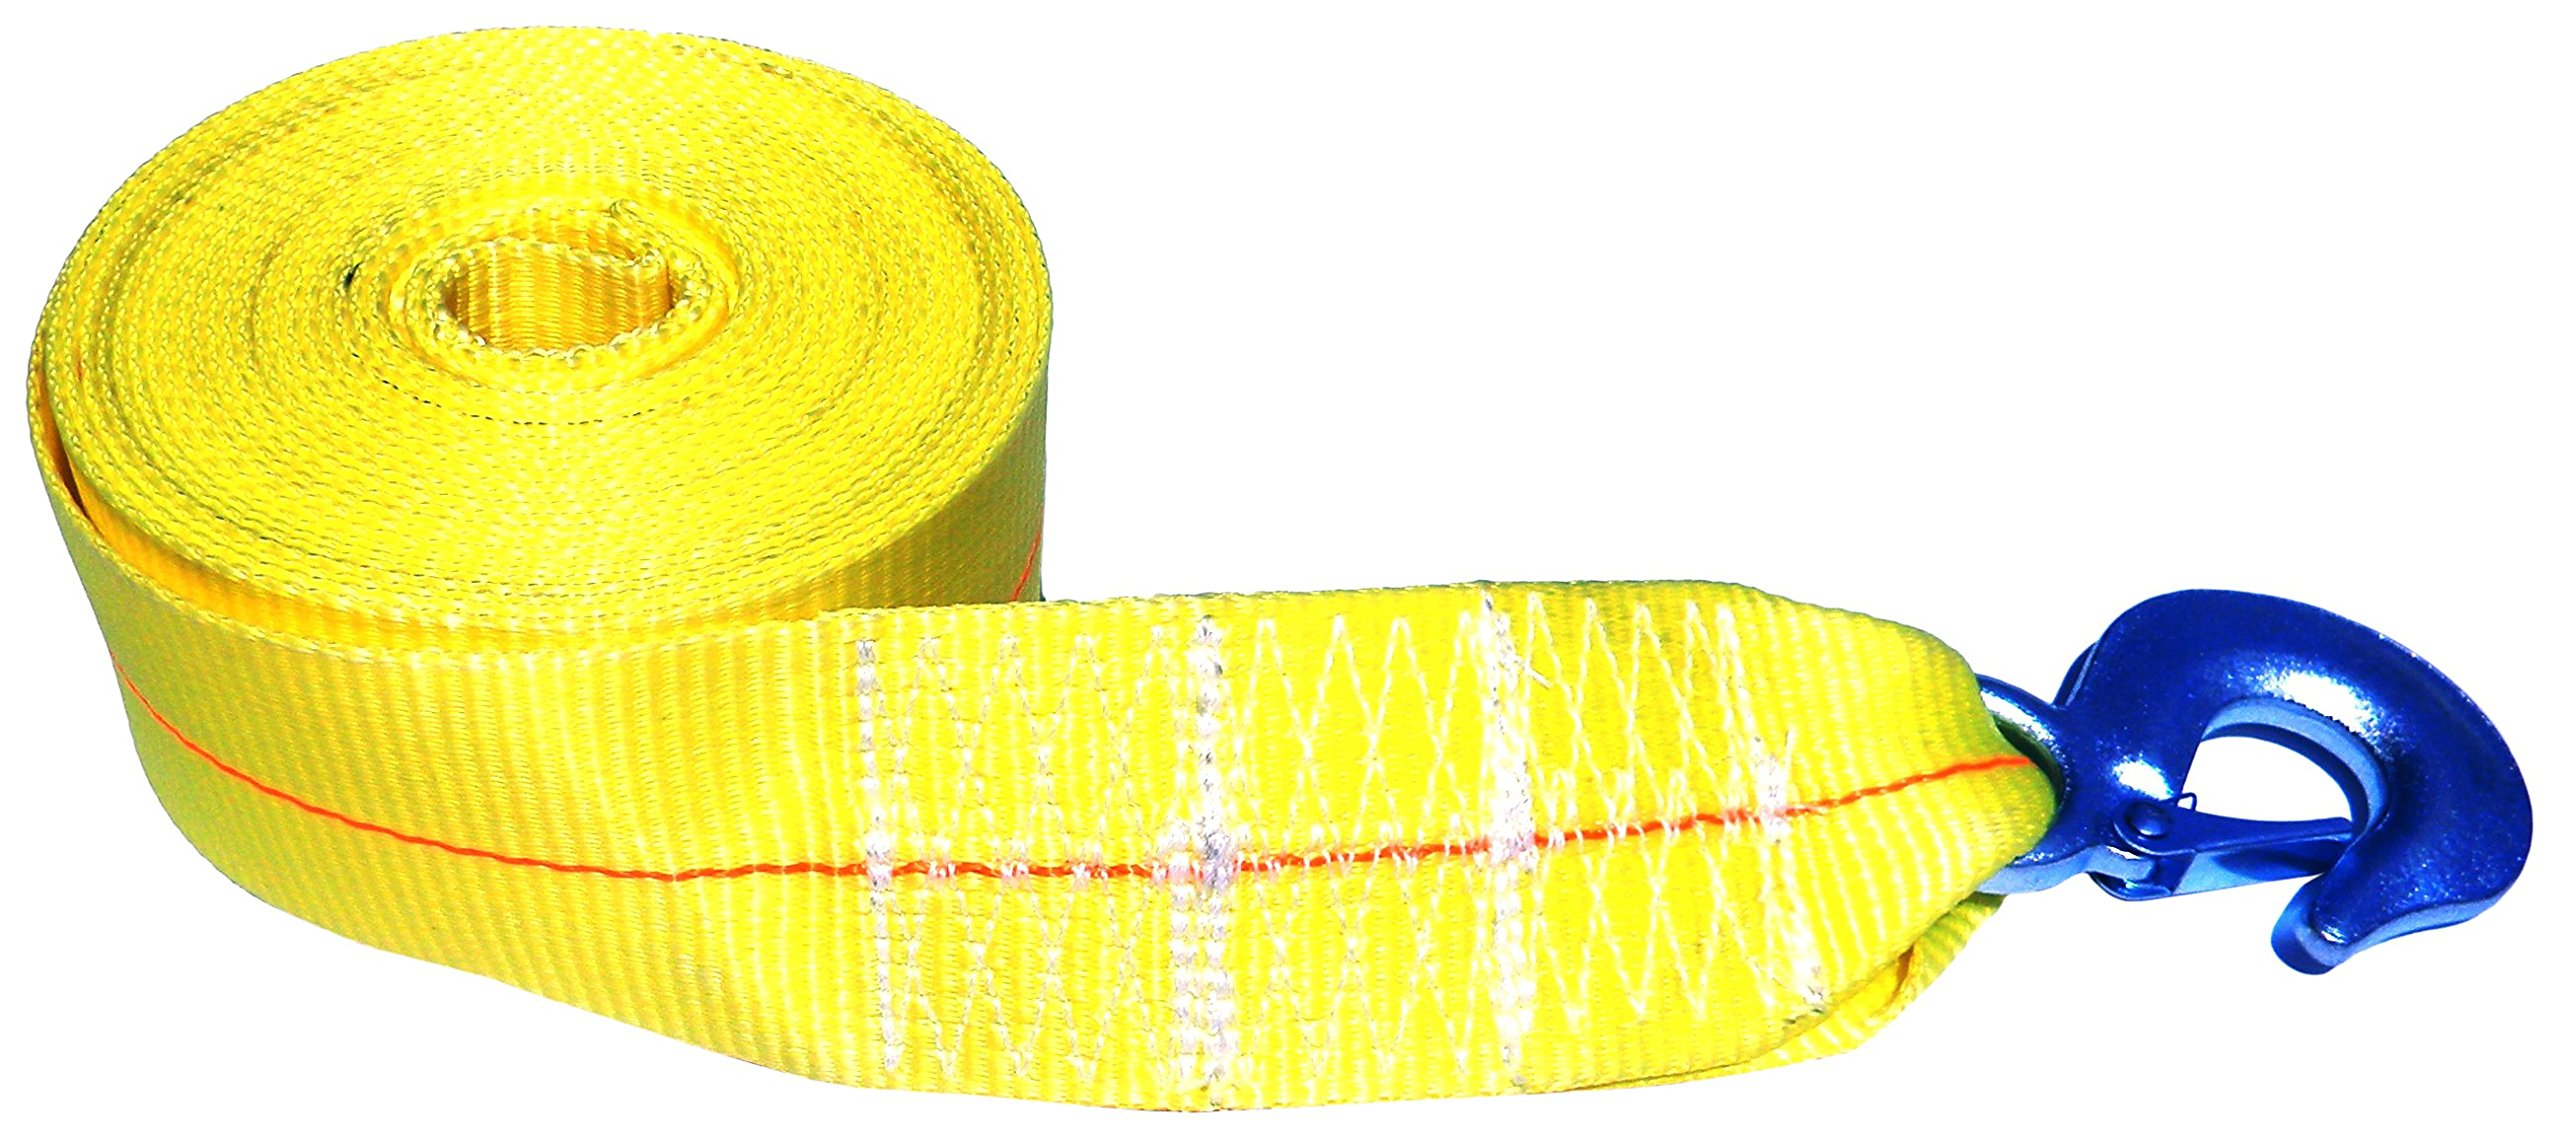 Rod Saver Extra Heavy Duty Replacement Winch Strap, 3'' x 25' by Rod Saver